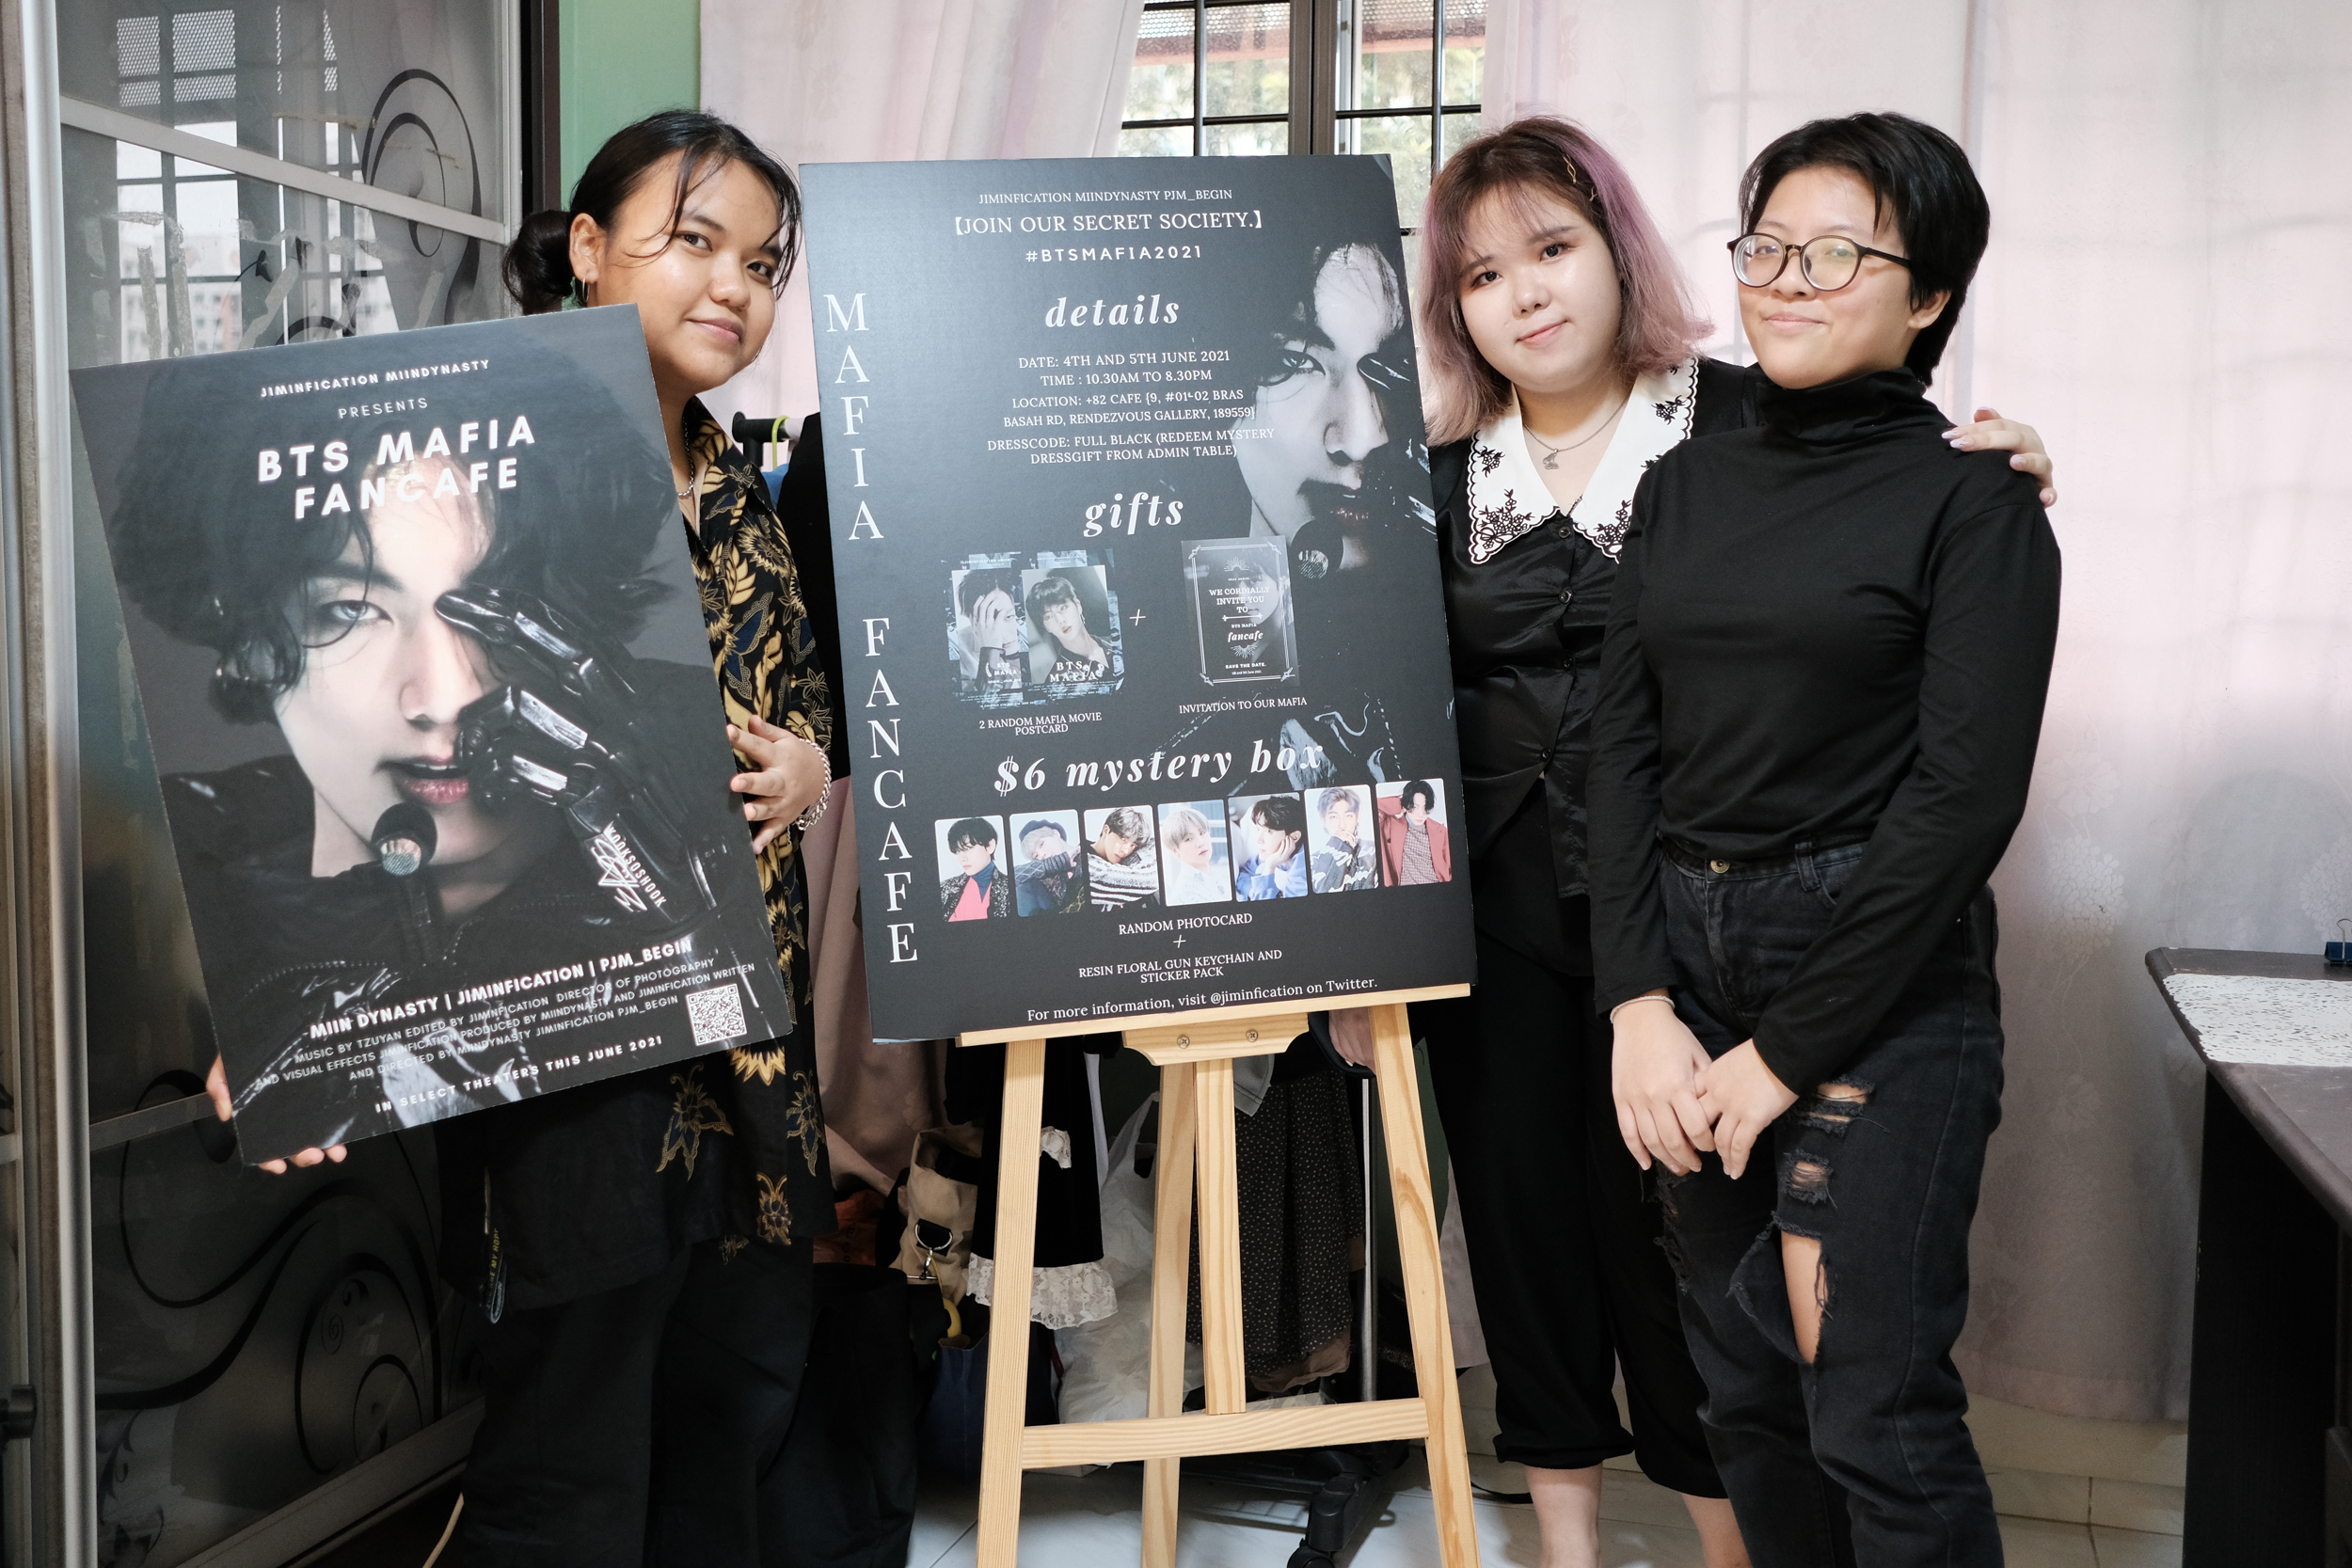 Image of Ng Kwok Ching and her friends Saz and Jae